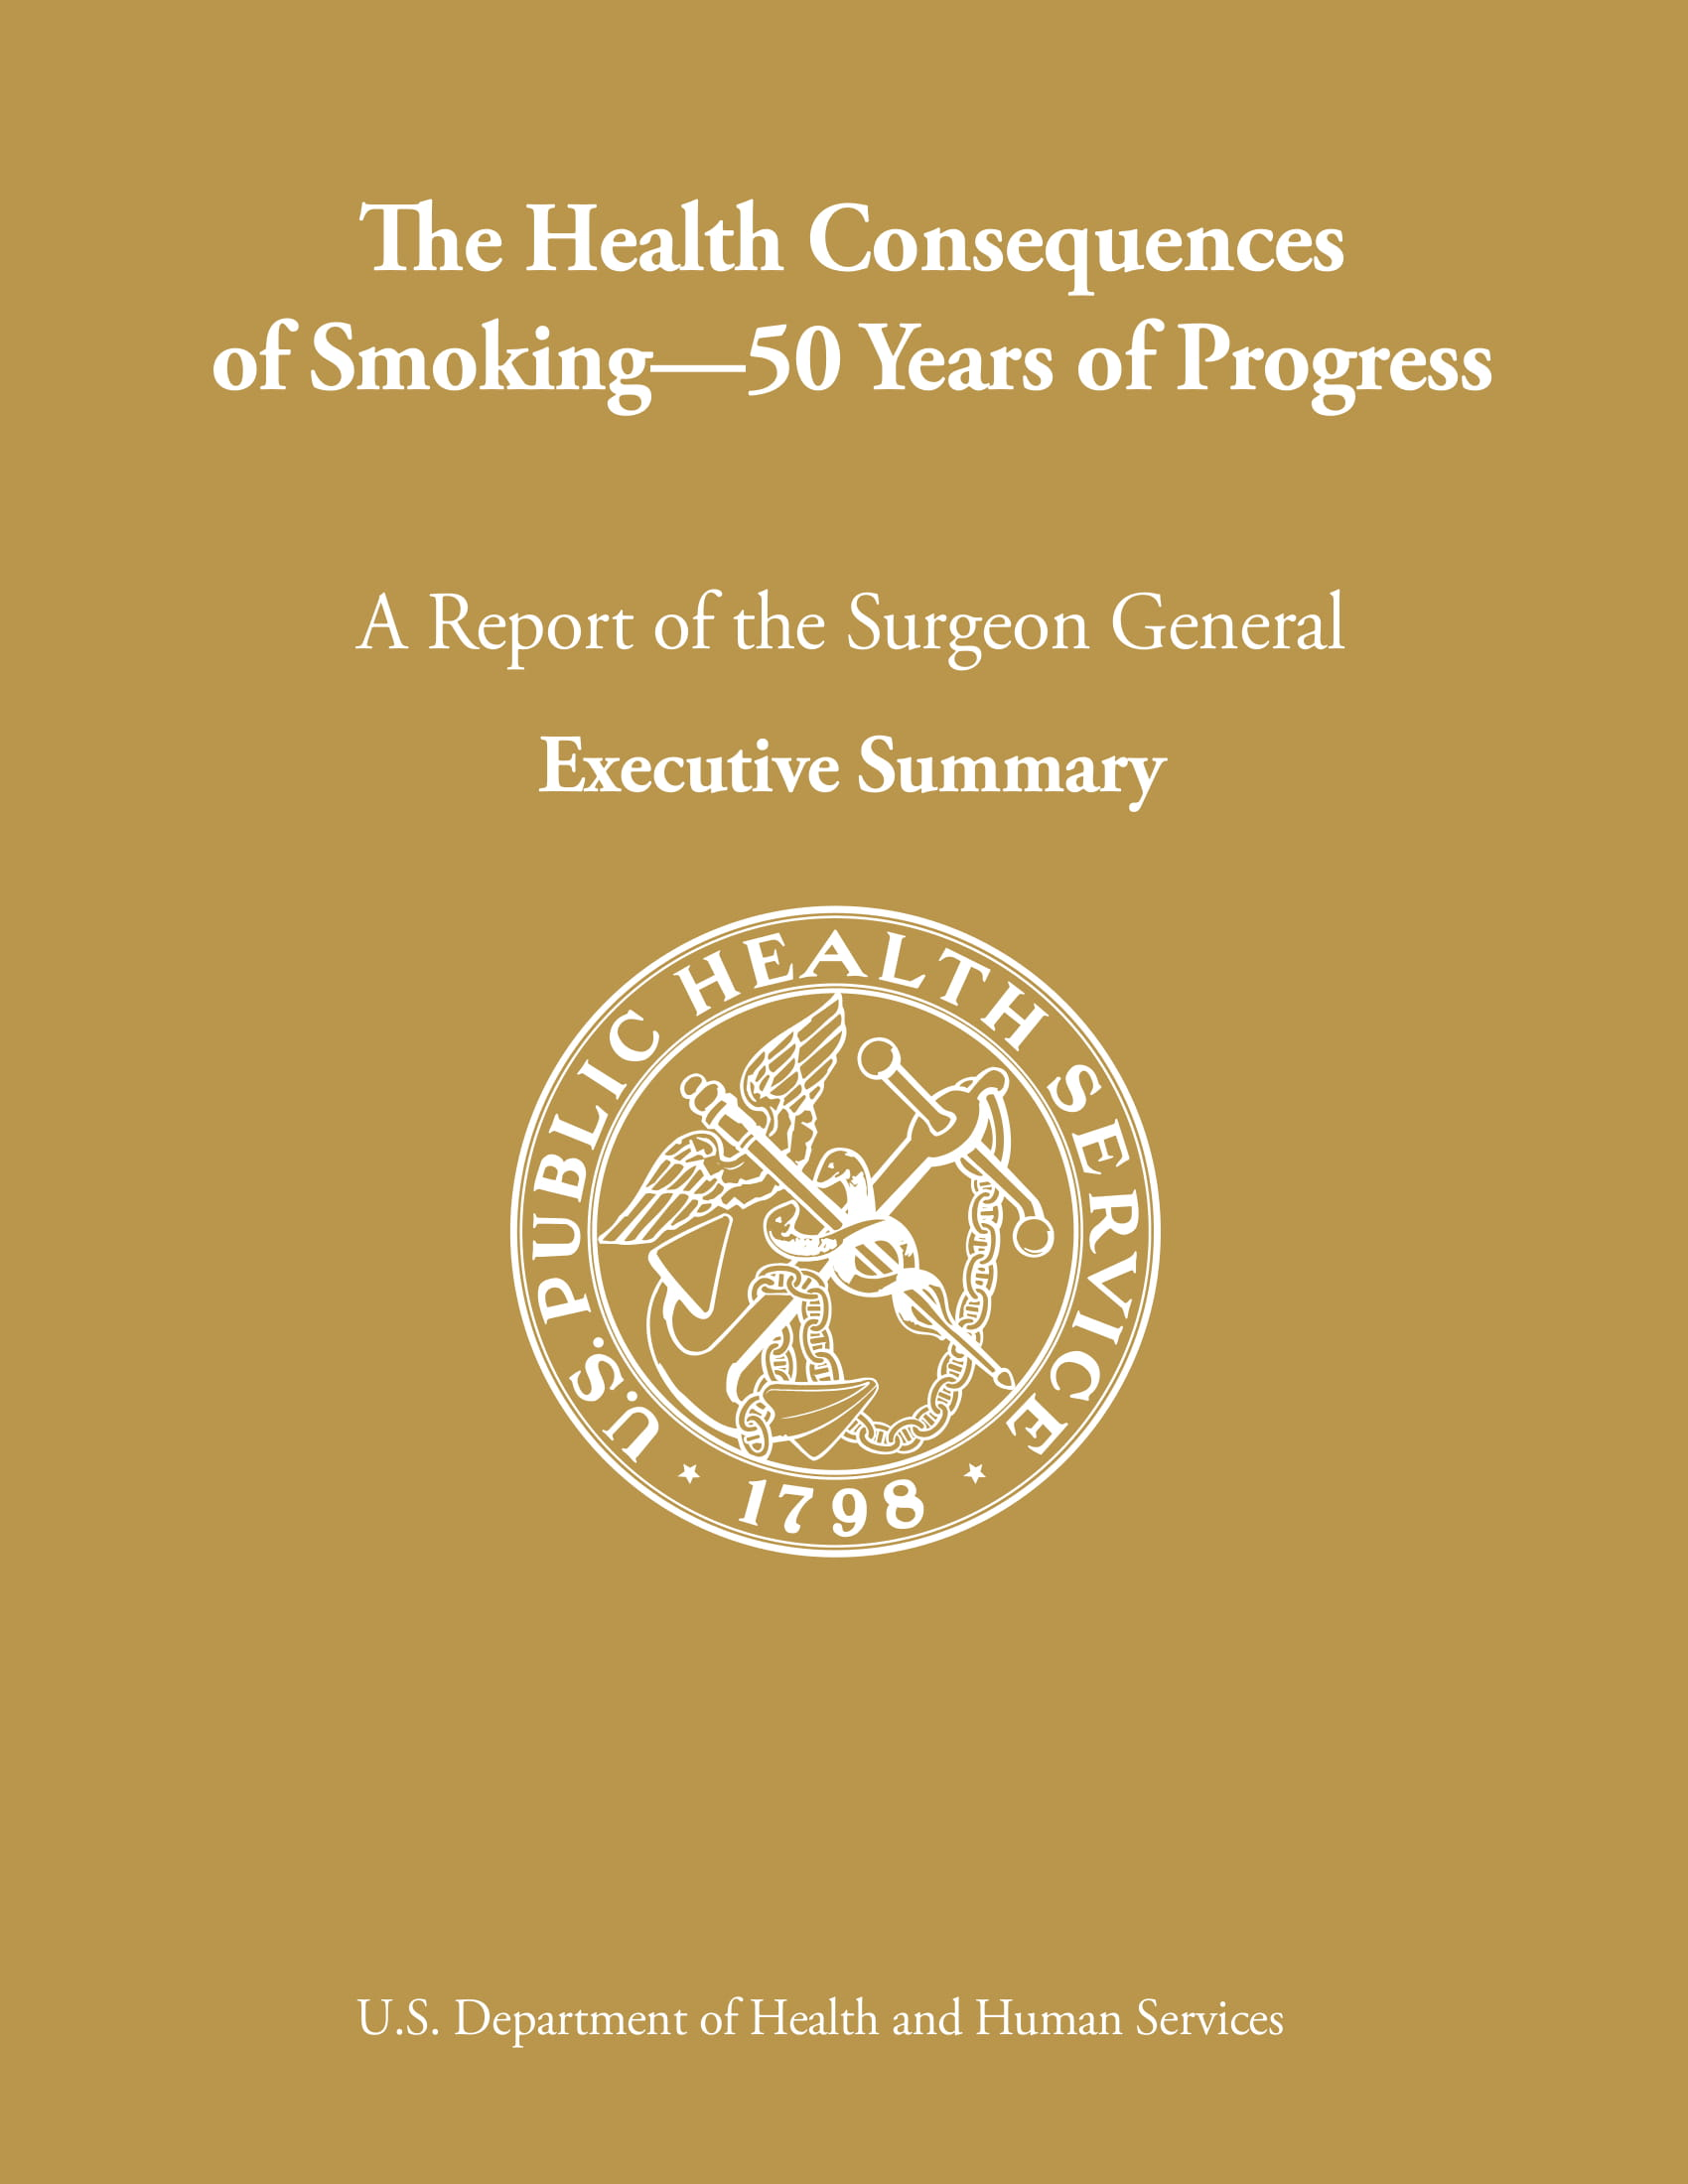 surgeon general report executive summary example